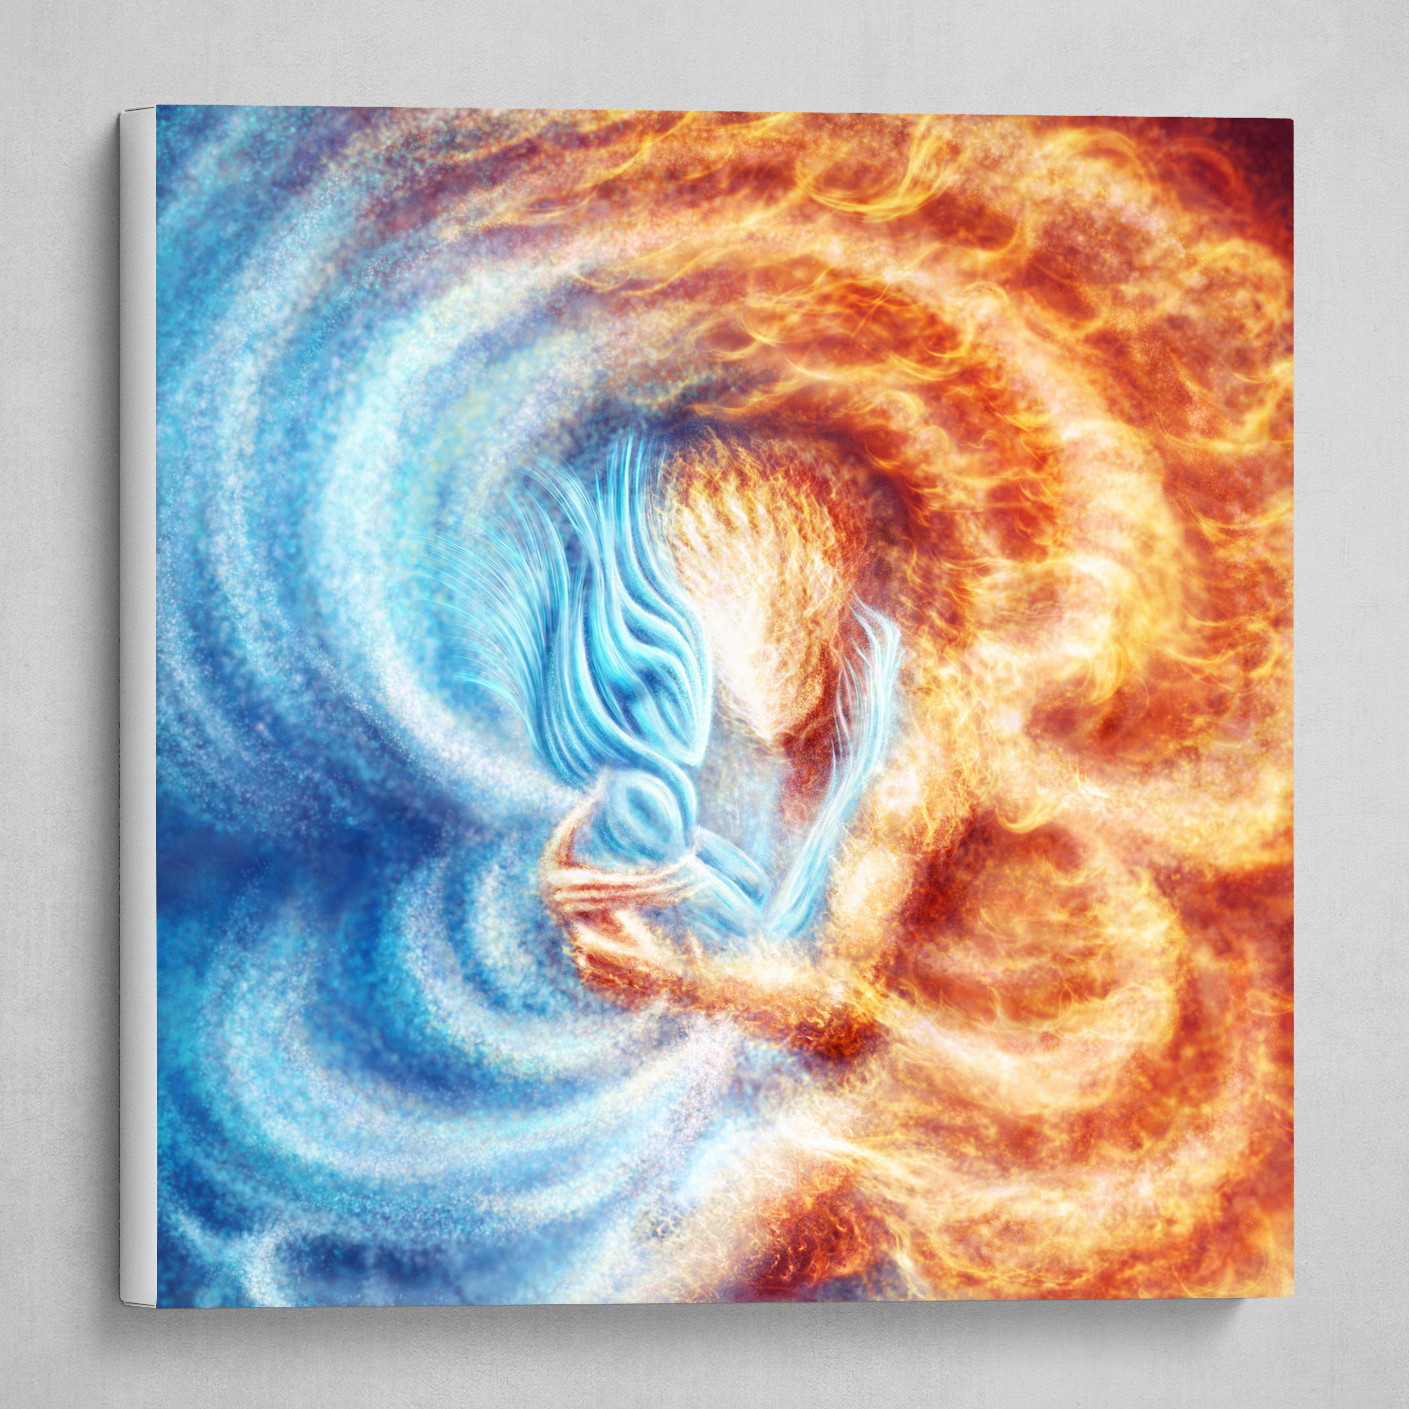 Fire and Ice (cropped into square)